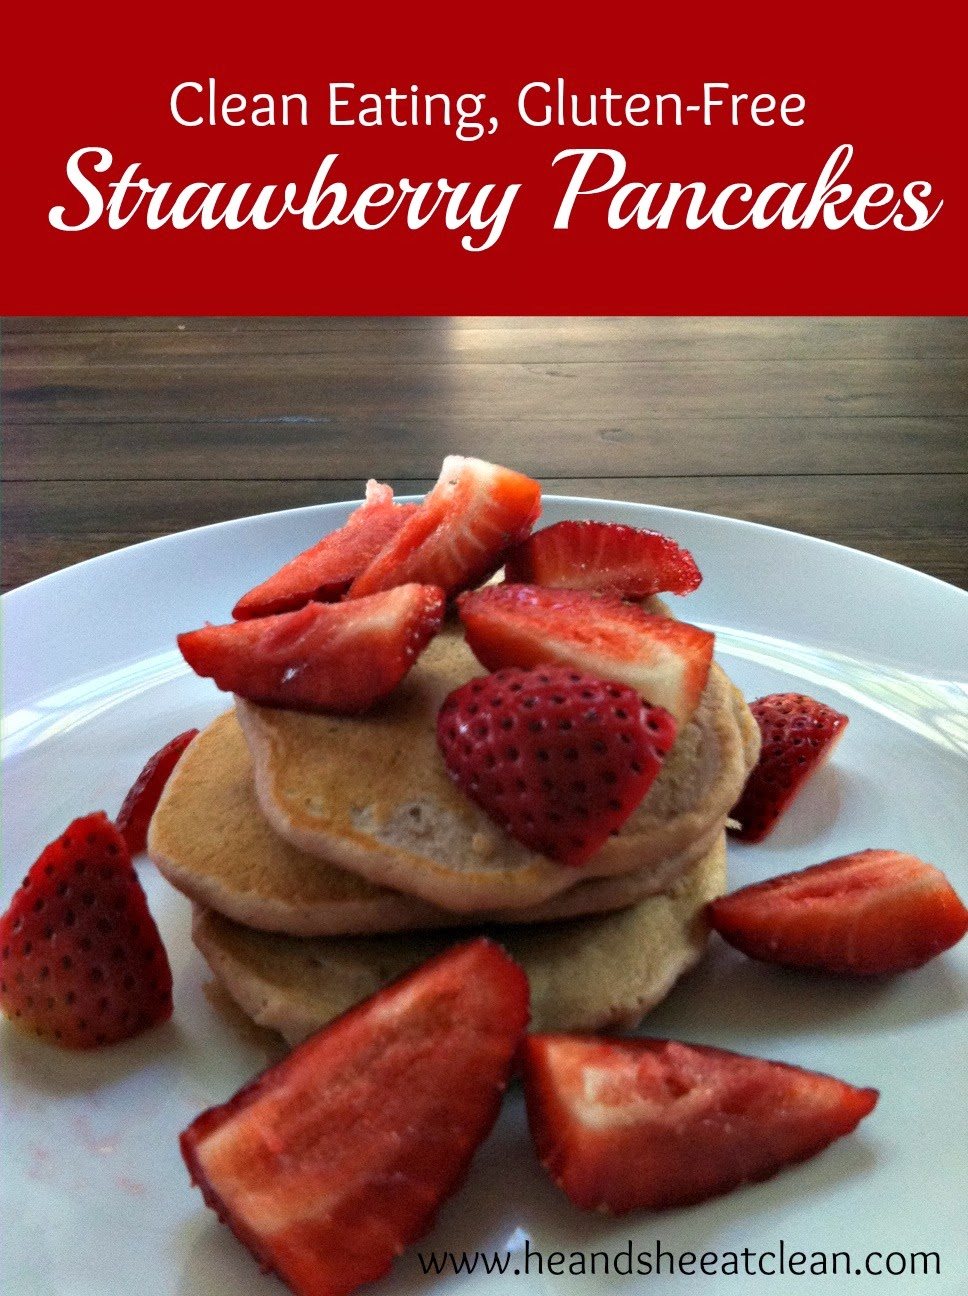 Clean-Eating-Gluten-Free-Strawberry-Fruit-Protein-Pancakes-Recipe-He-She-Eat-Clean.jpg